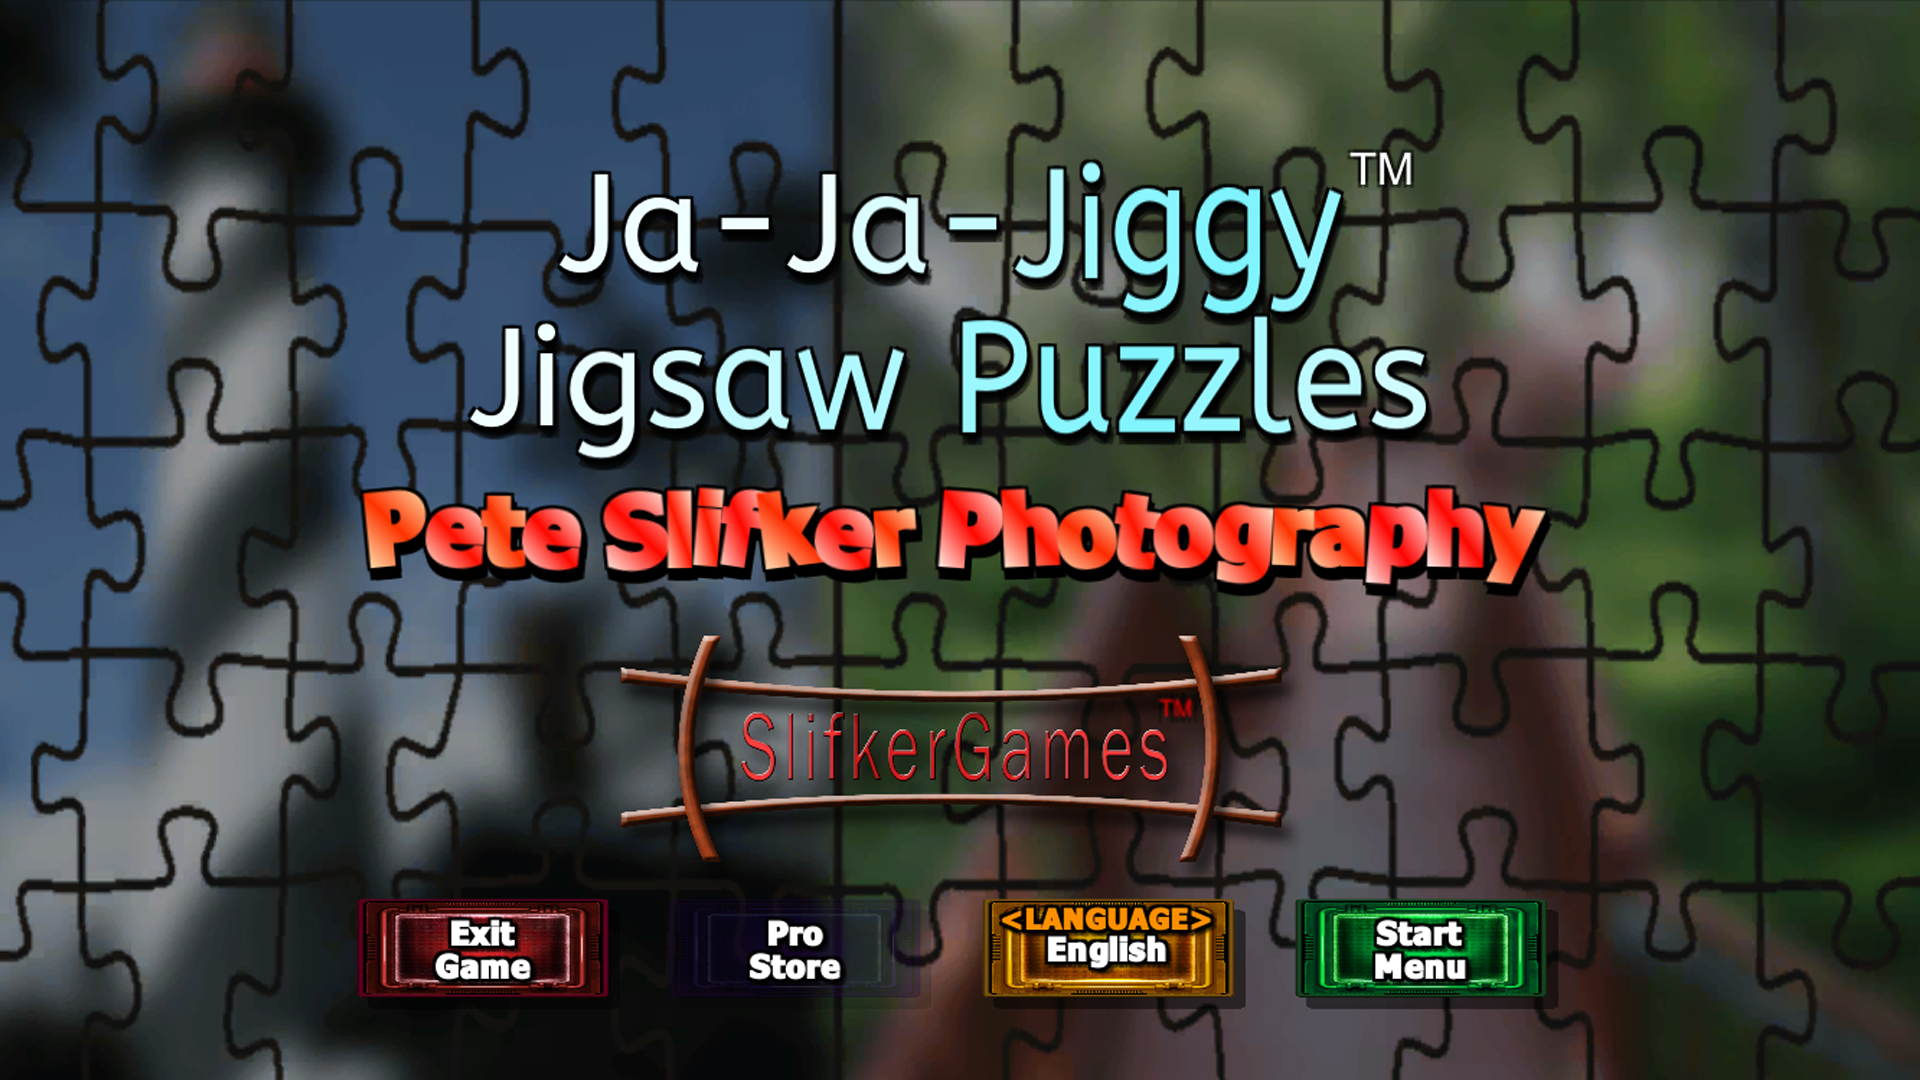 Study Whatty: Ja-Ja-Jiggy Jigsaw Puzzles (Picture 1)